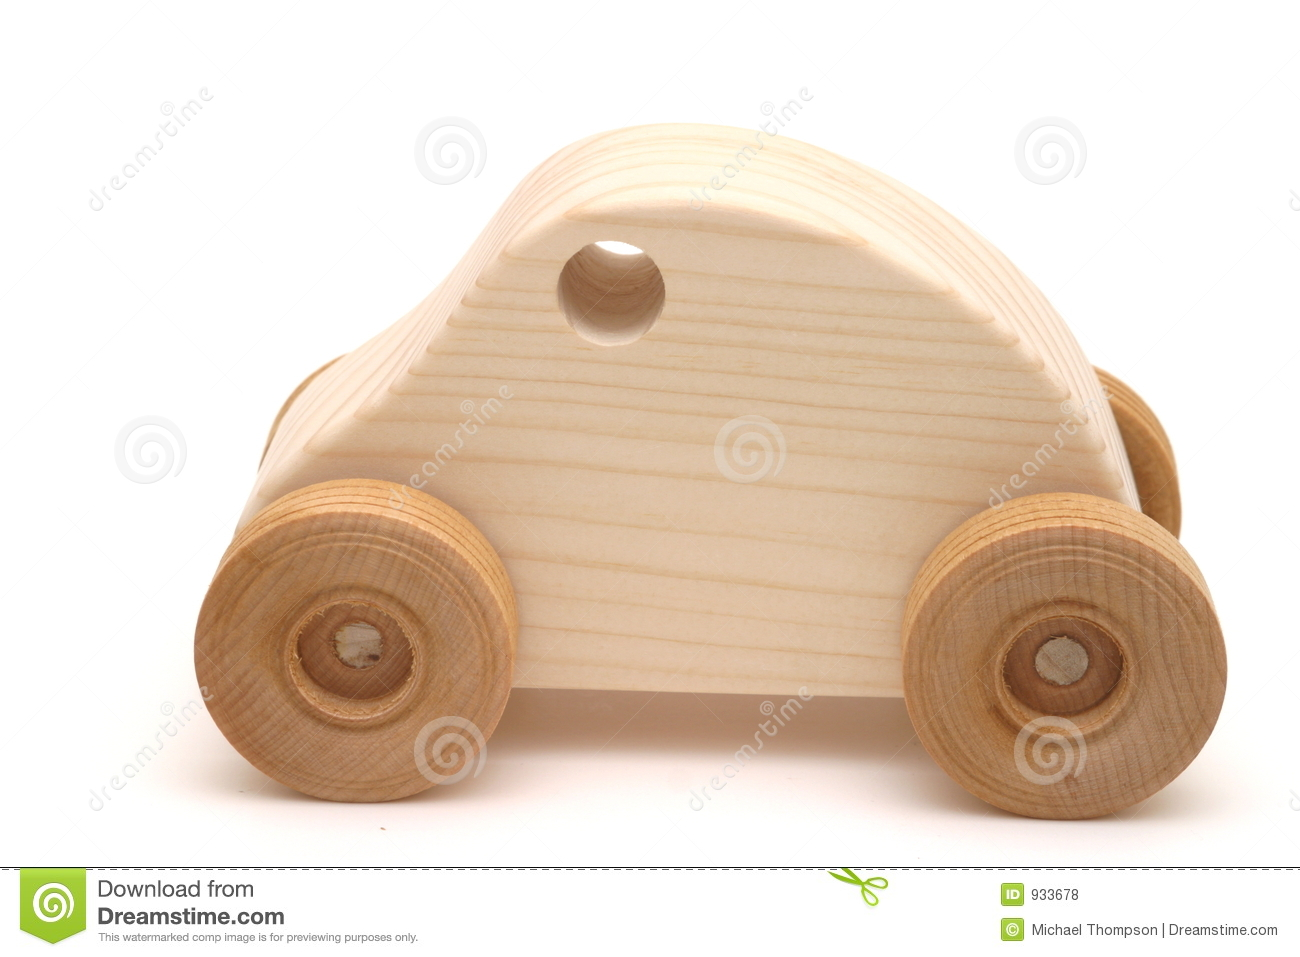 Wooden Toy Car wooden toy car royalty free stock photos - image ...